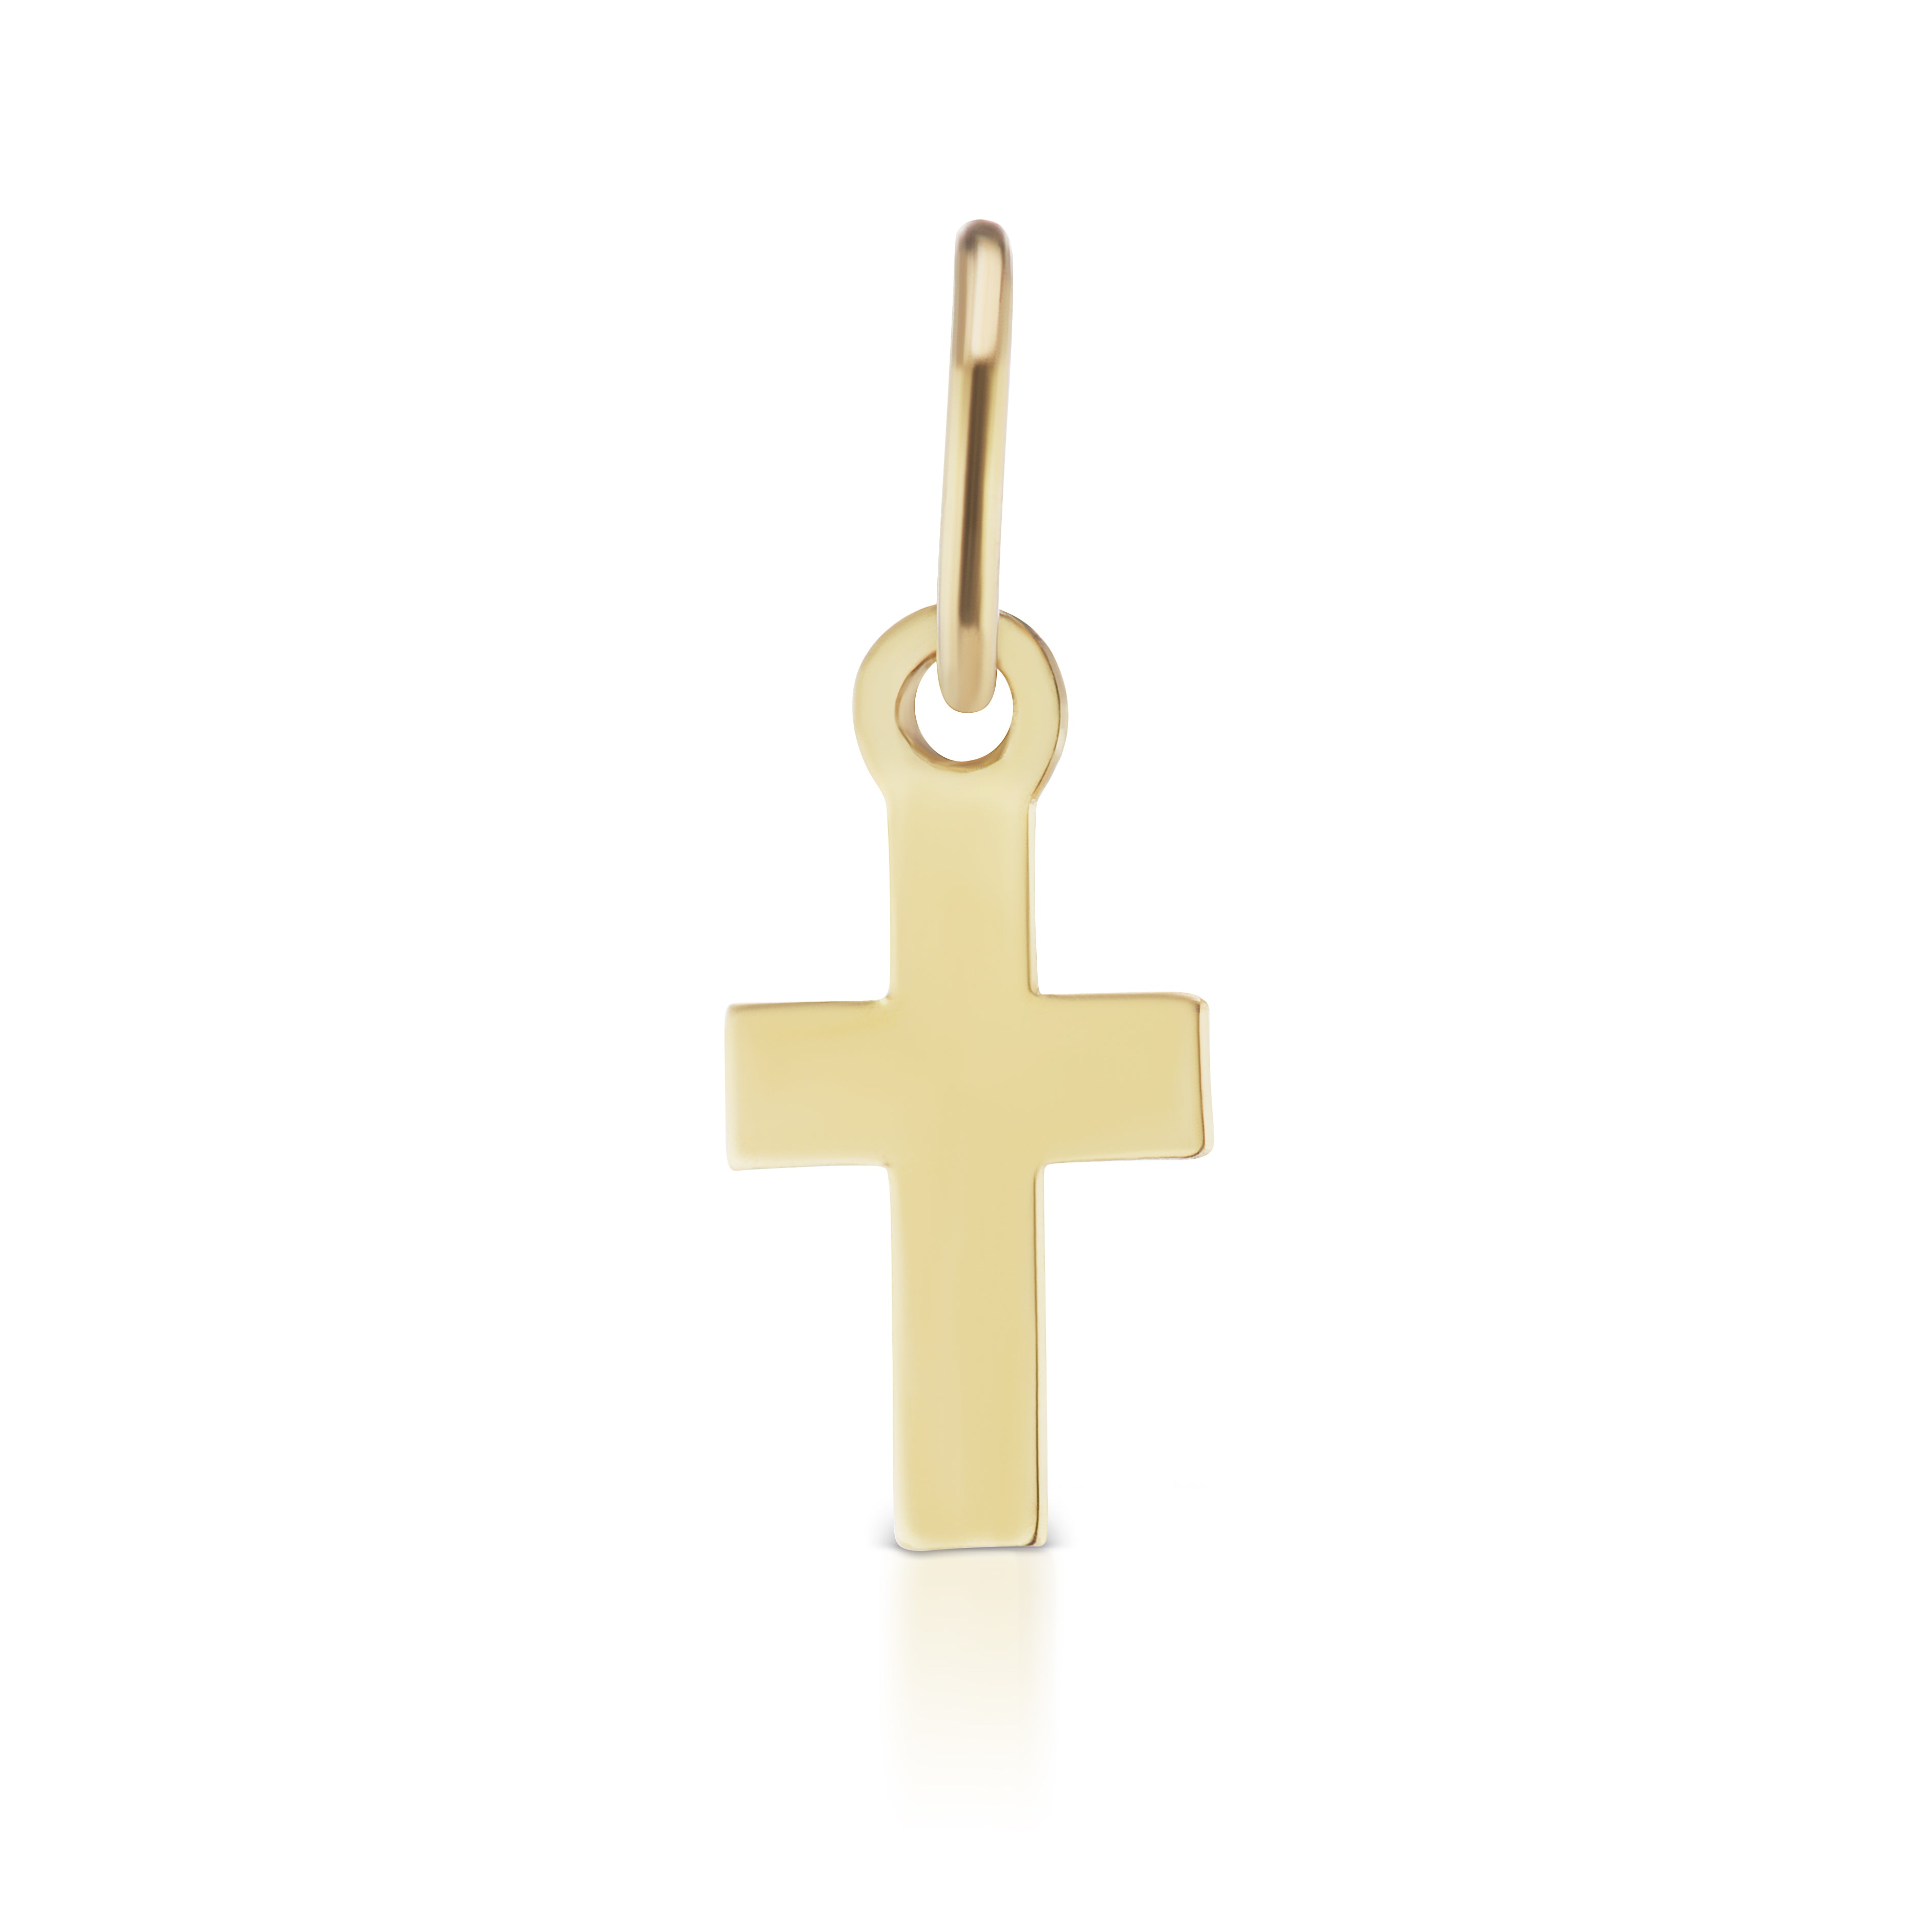 The Gold Petite Cross Charm